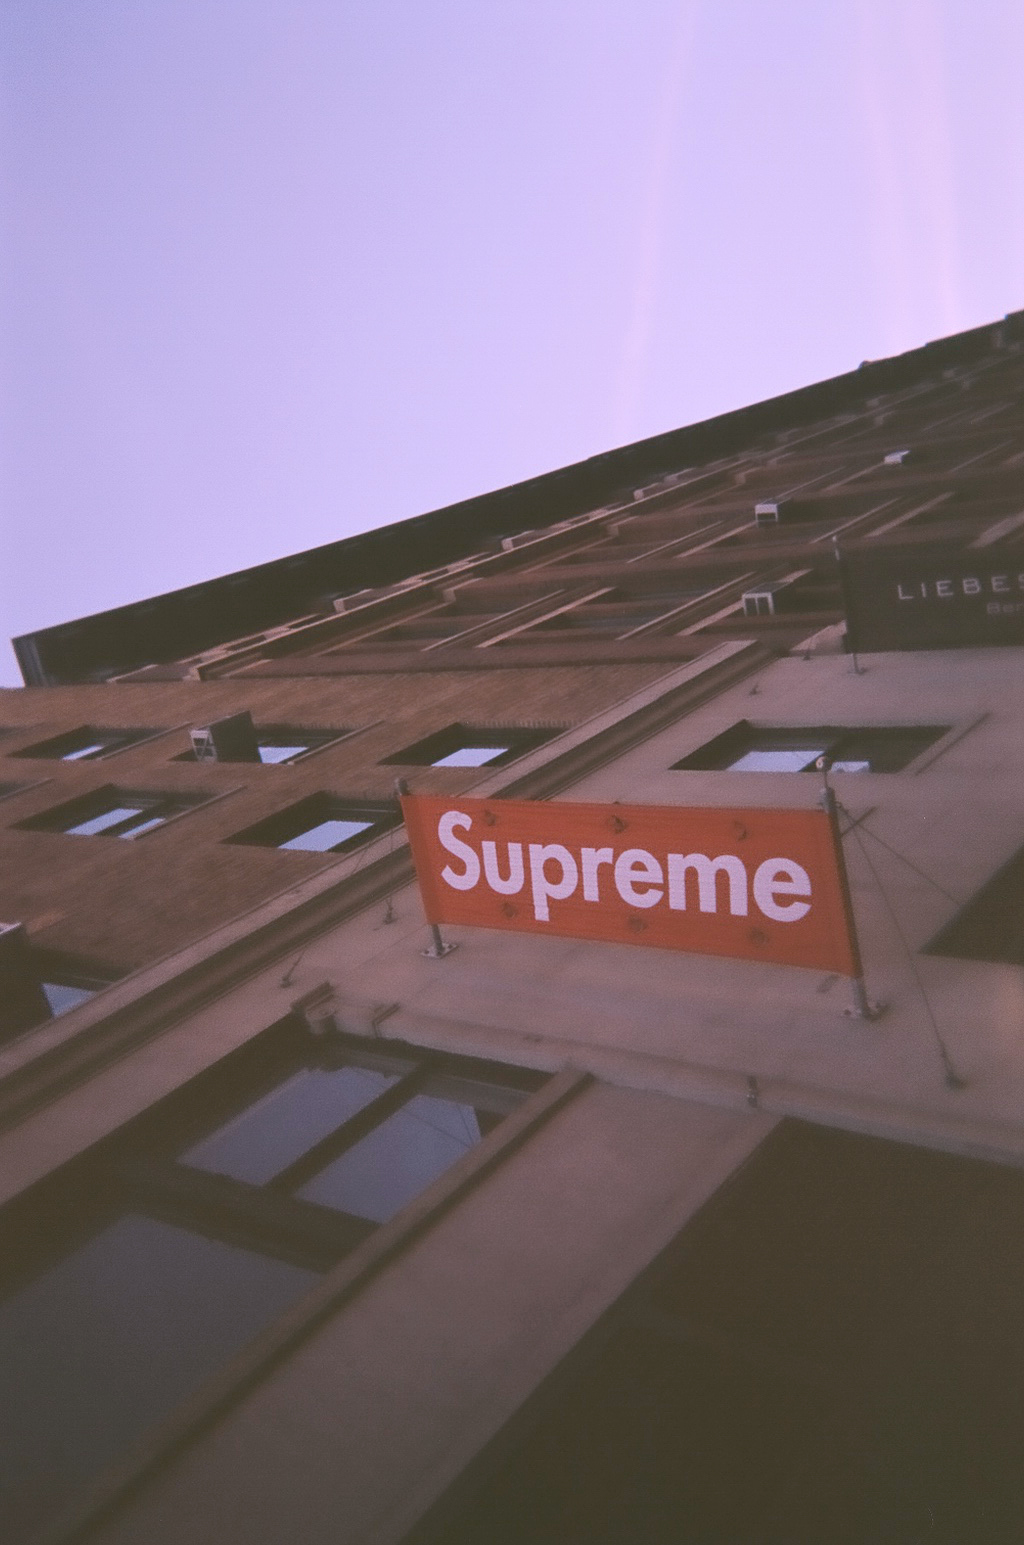 Supreme wallpaper wallpapersafari - Hd supreme iphone wallpaper ...